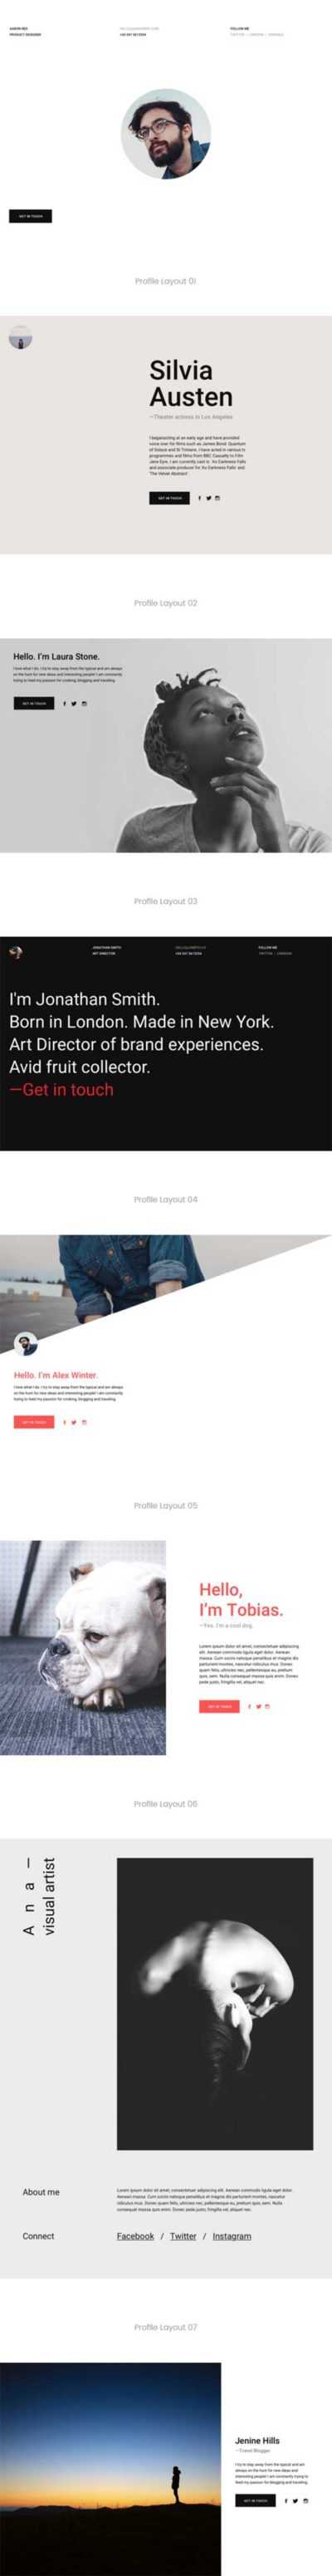 divi profile page layout